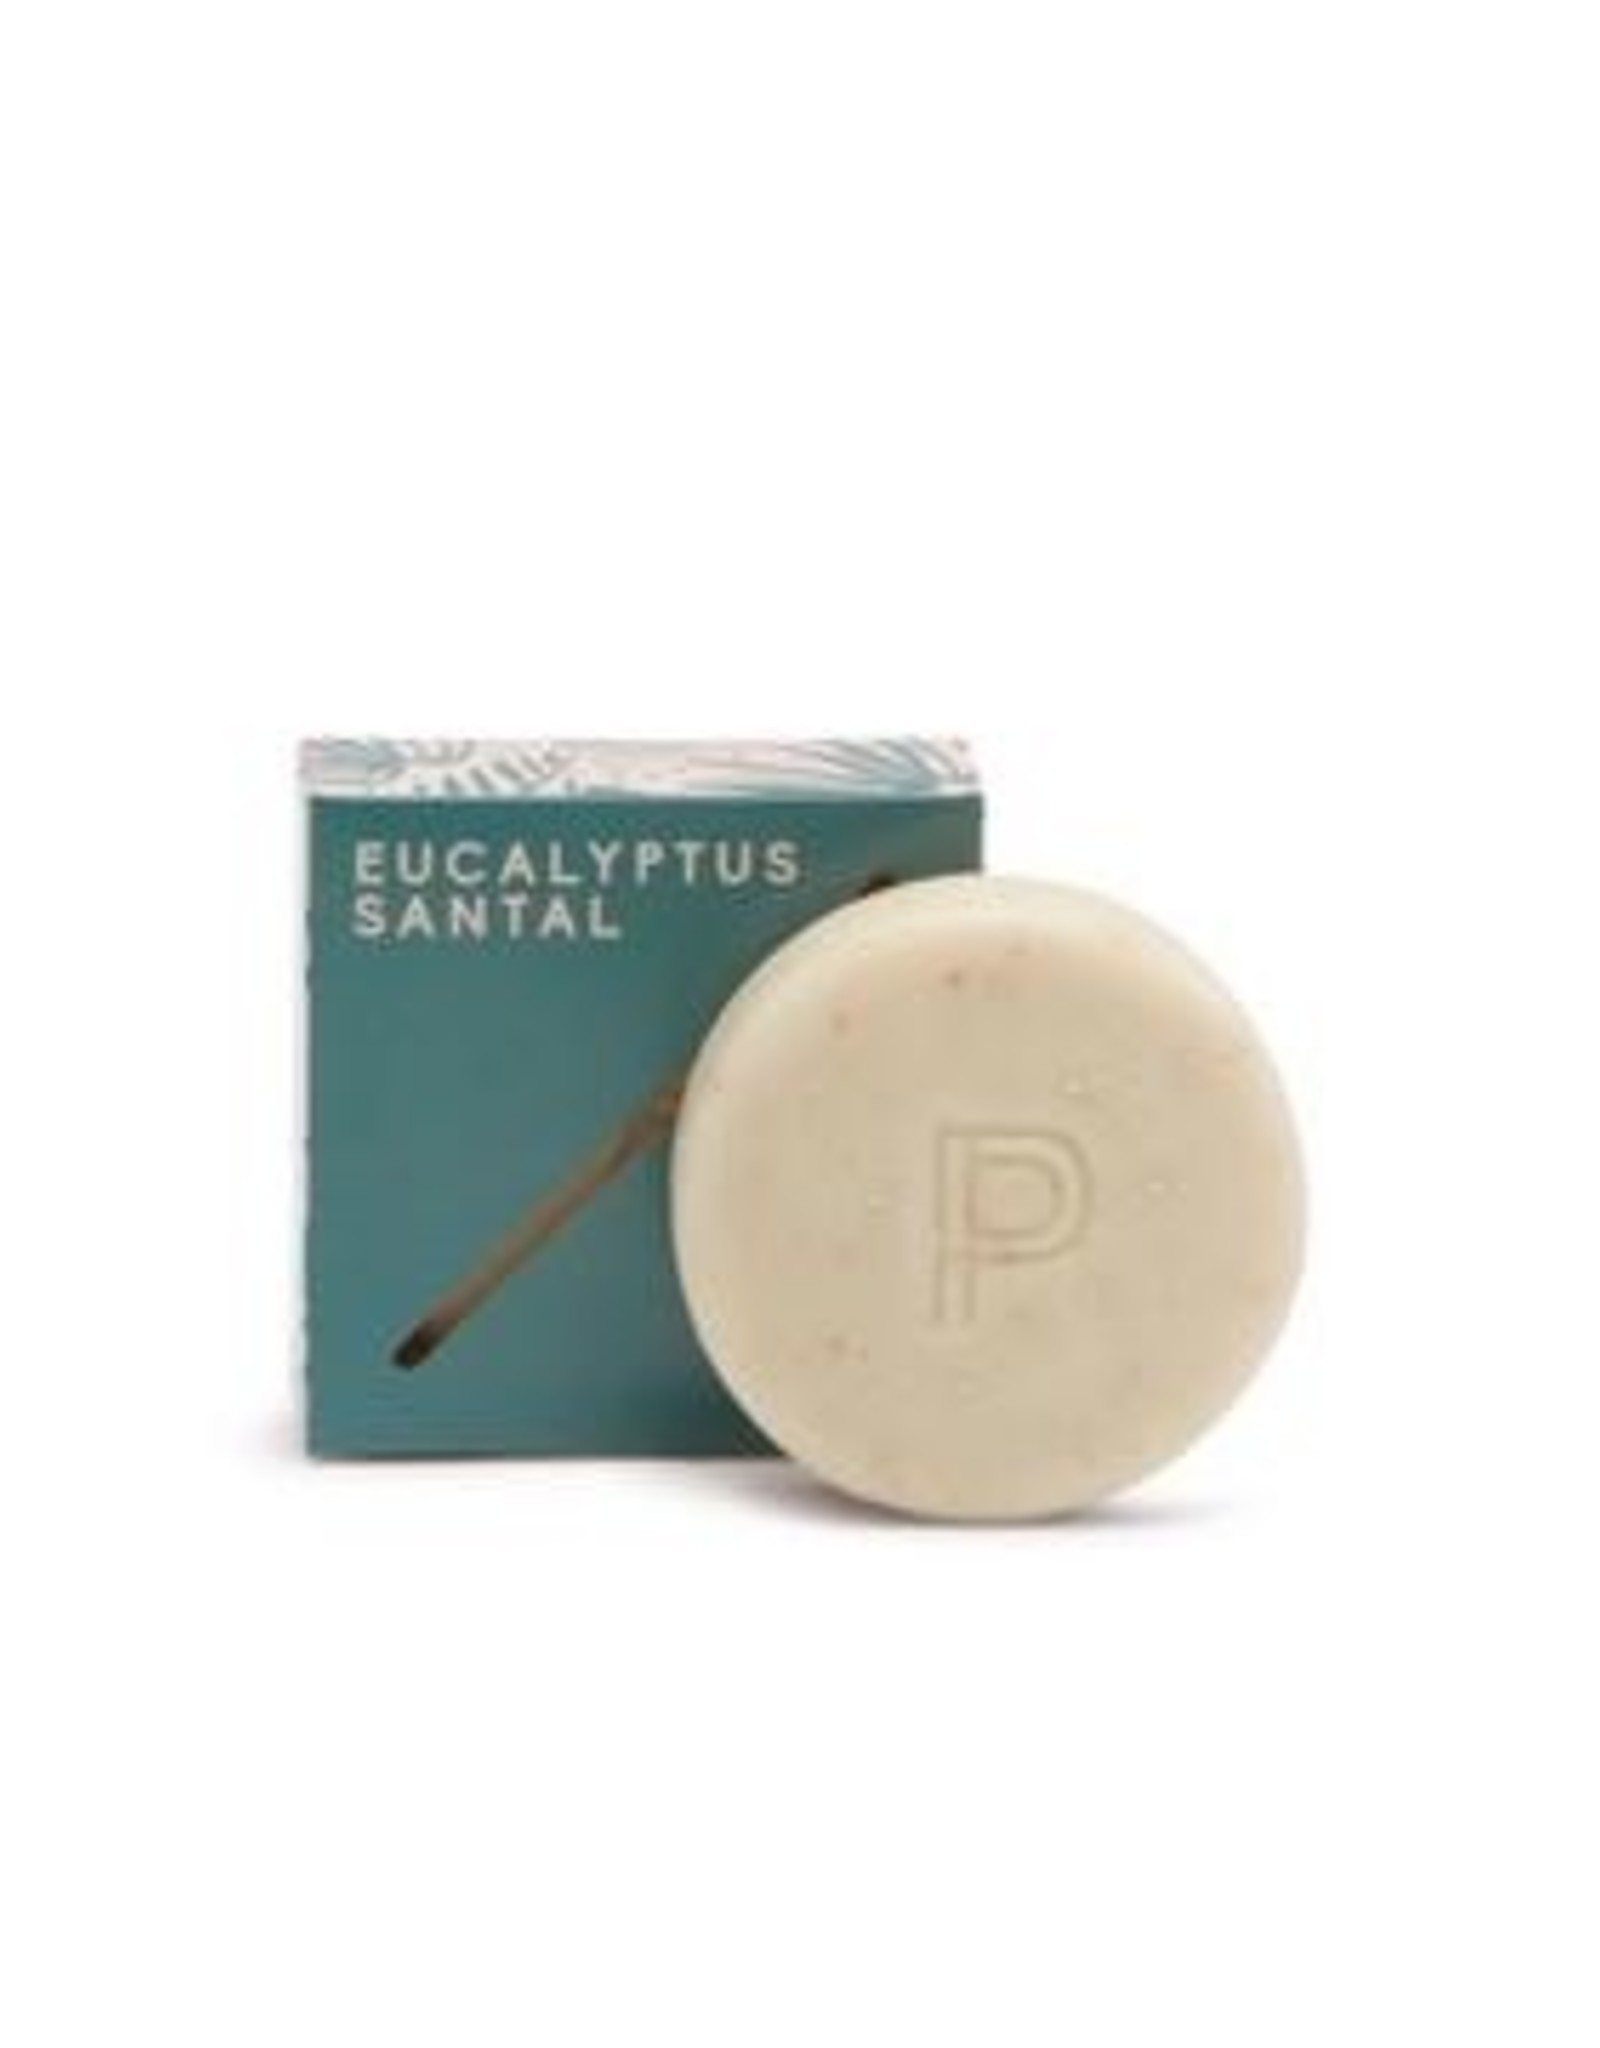 PAX - Soap/Eucalyptus Santal Oatmeal 3oz